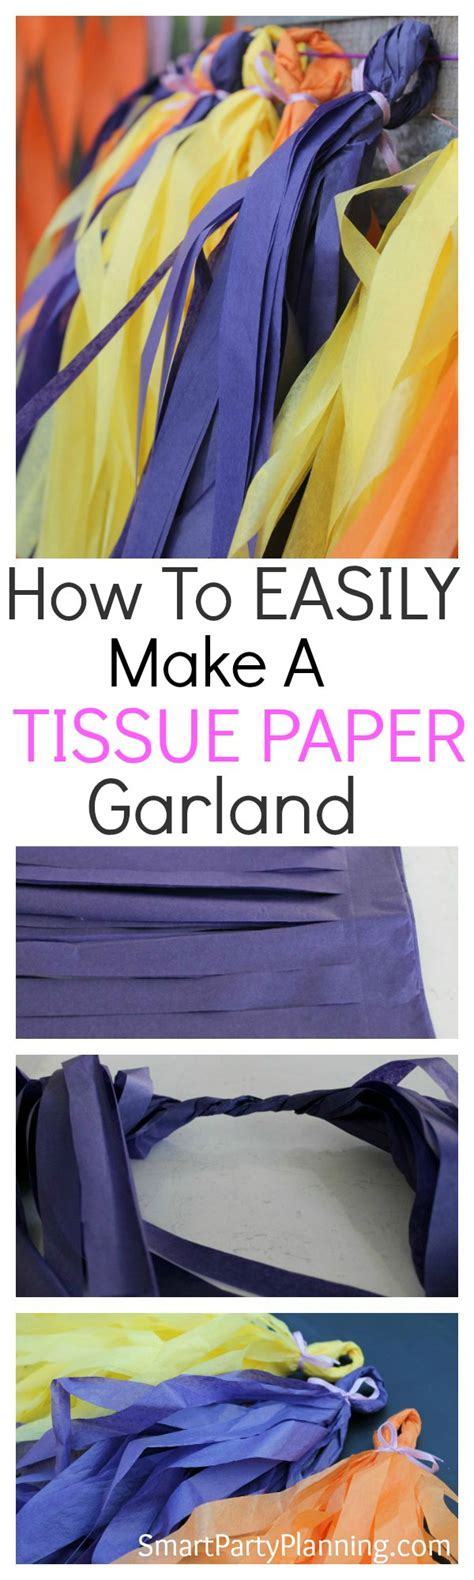 How To Make A Paper The Easy Way - how to make a tissue paper garland the easy way